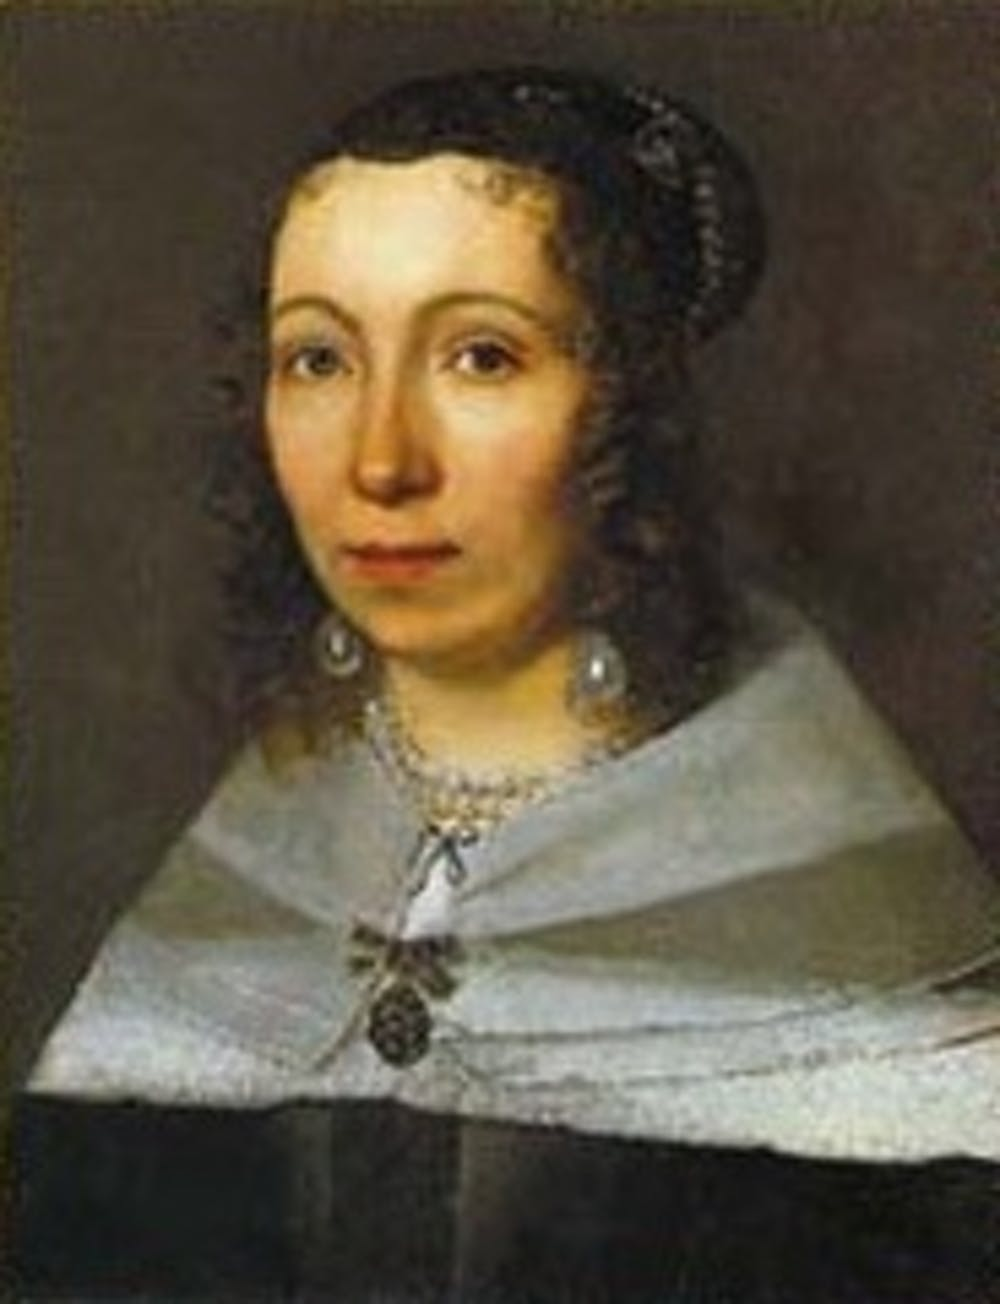 A 17th-century portrait of Maria Sibylla Merian by an unknown artist. Credit: Wikimedia Commons